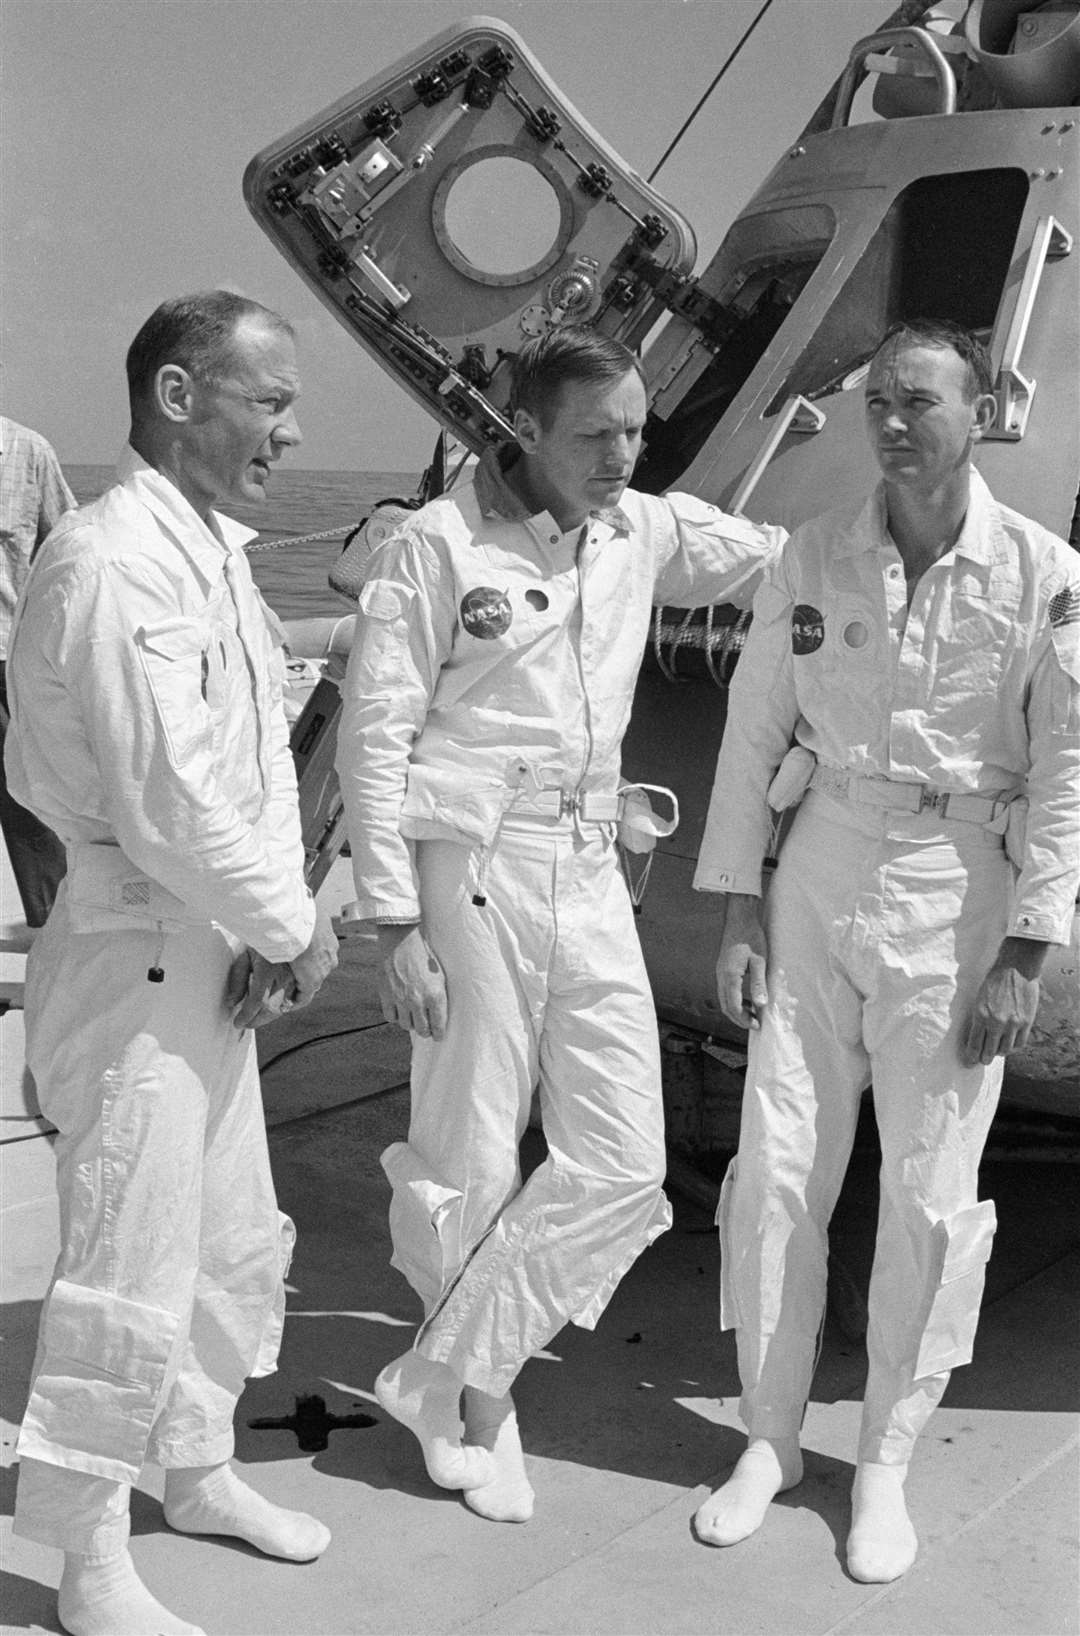 May 24, 1969: The prime crew of the Apollo 11 lunar landing mission relaxes on the deck of the NASA Motor Vessel Retriever prior to participating in water egress training in the Gulf of Mexico. From left are astronauts Edwin E. Aldrin Jr., lunar module pilot; Neil A Armstrong, commander; and Michael Collins, command module pilot. In the background is Apollo Boilerplate 1102 which was used in the training exercise. Image: NASA (14041987)